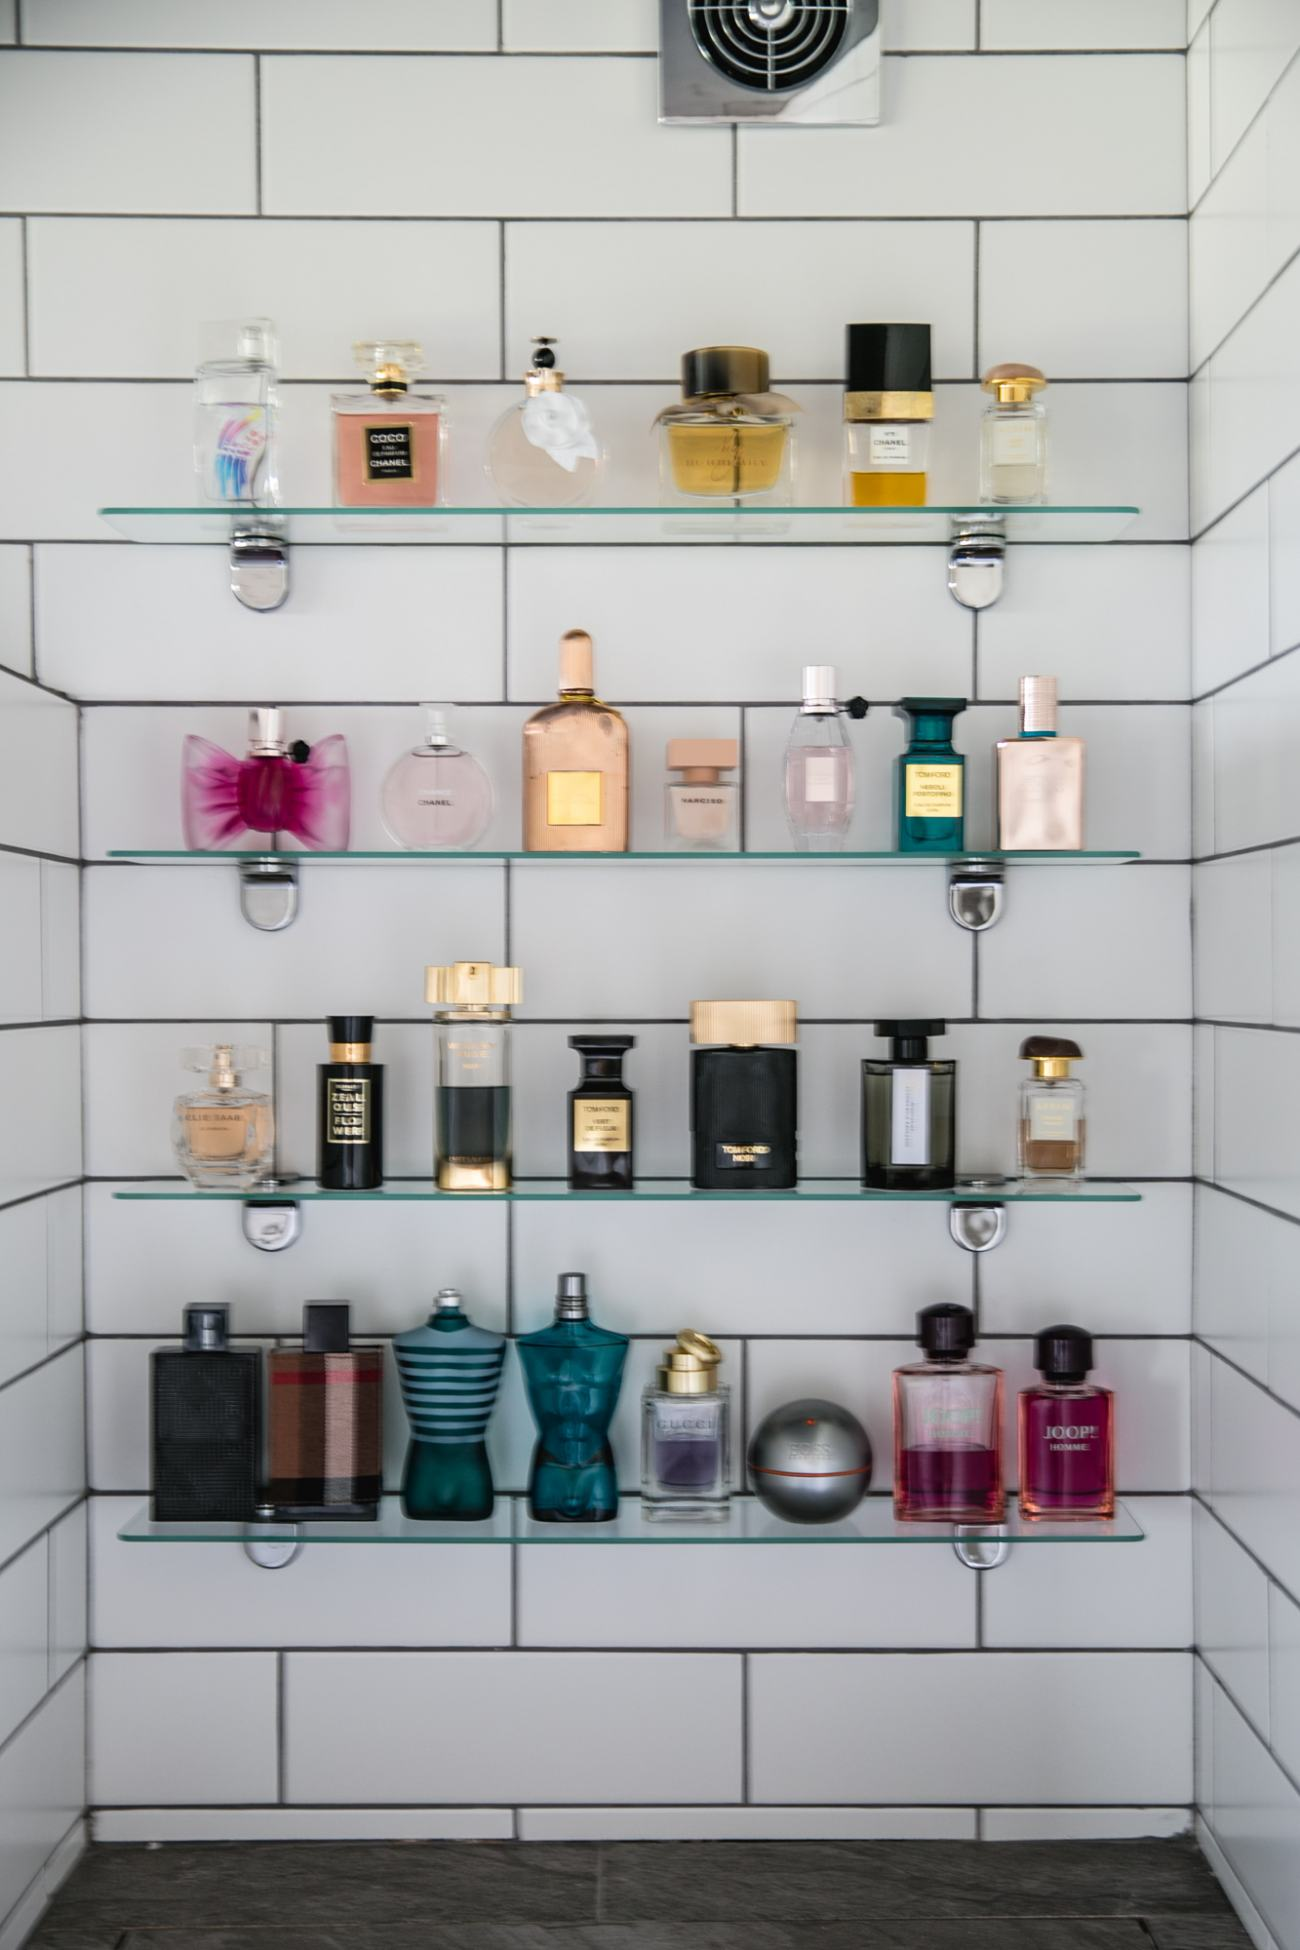 fragrance wall in bathroom, fragrance on display, white subway tiles, grey grout, glass shelves